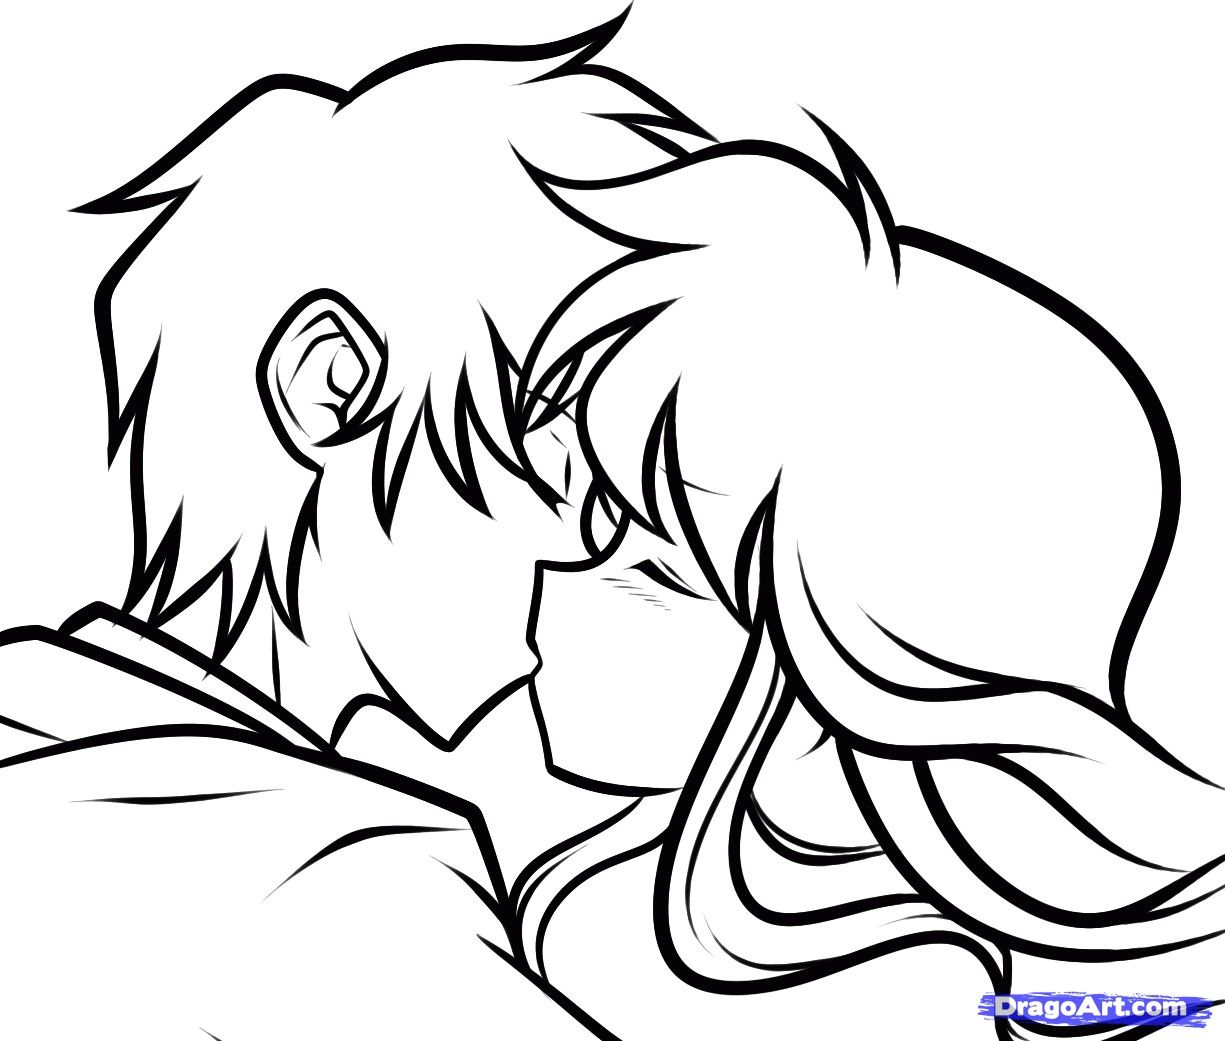 1225x1041 Anime Couple Kissing Drawing Couples Coloring Pages Arts